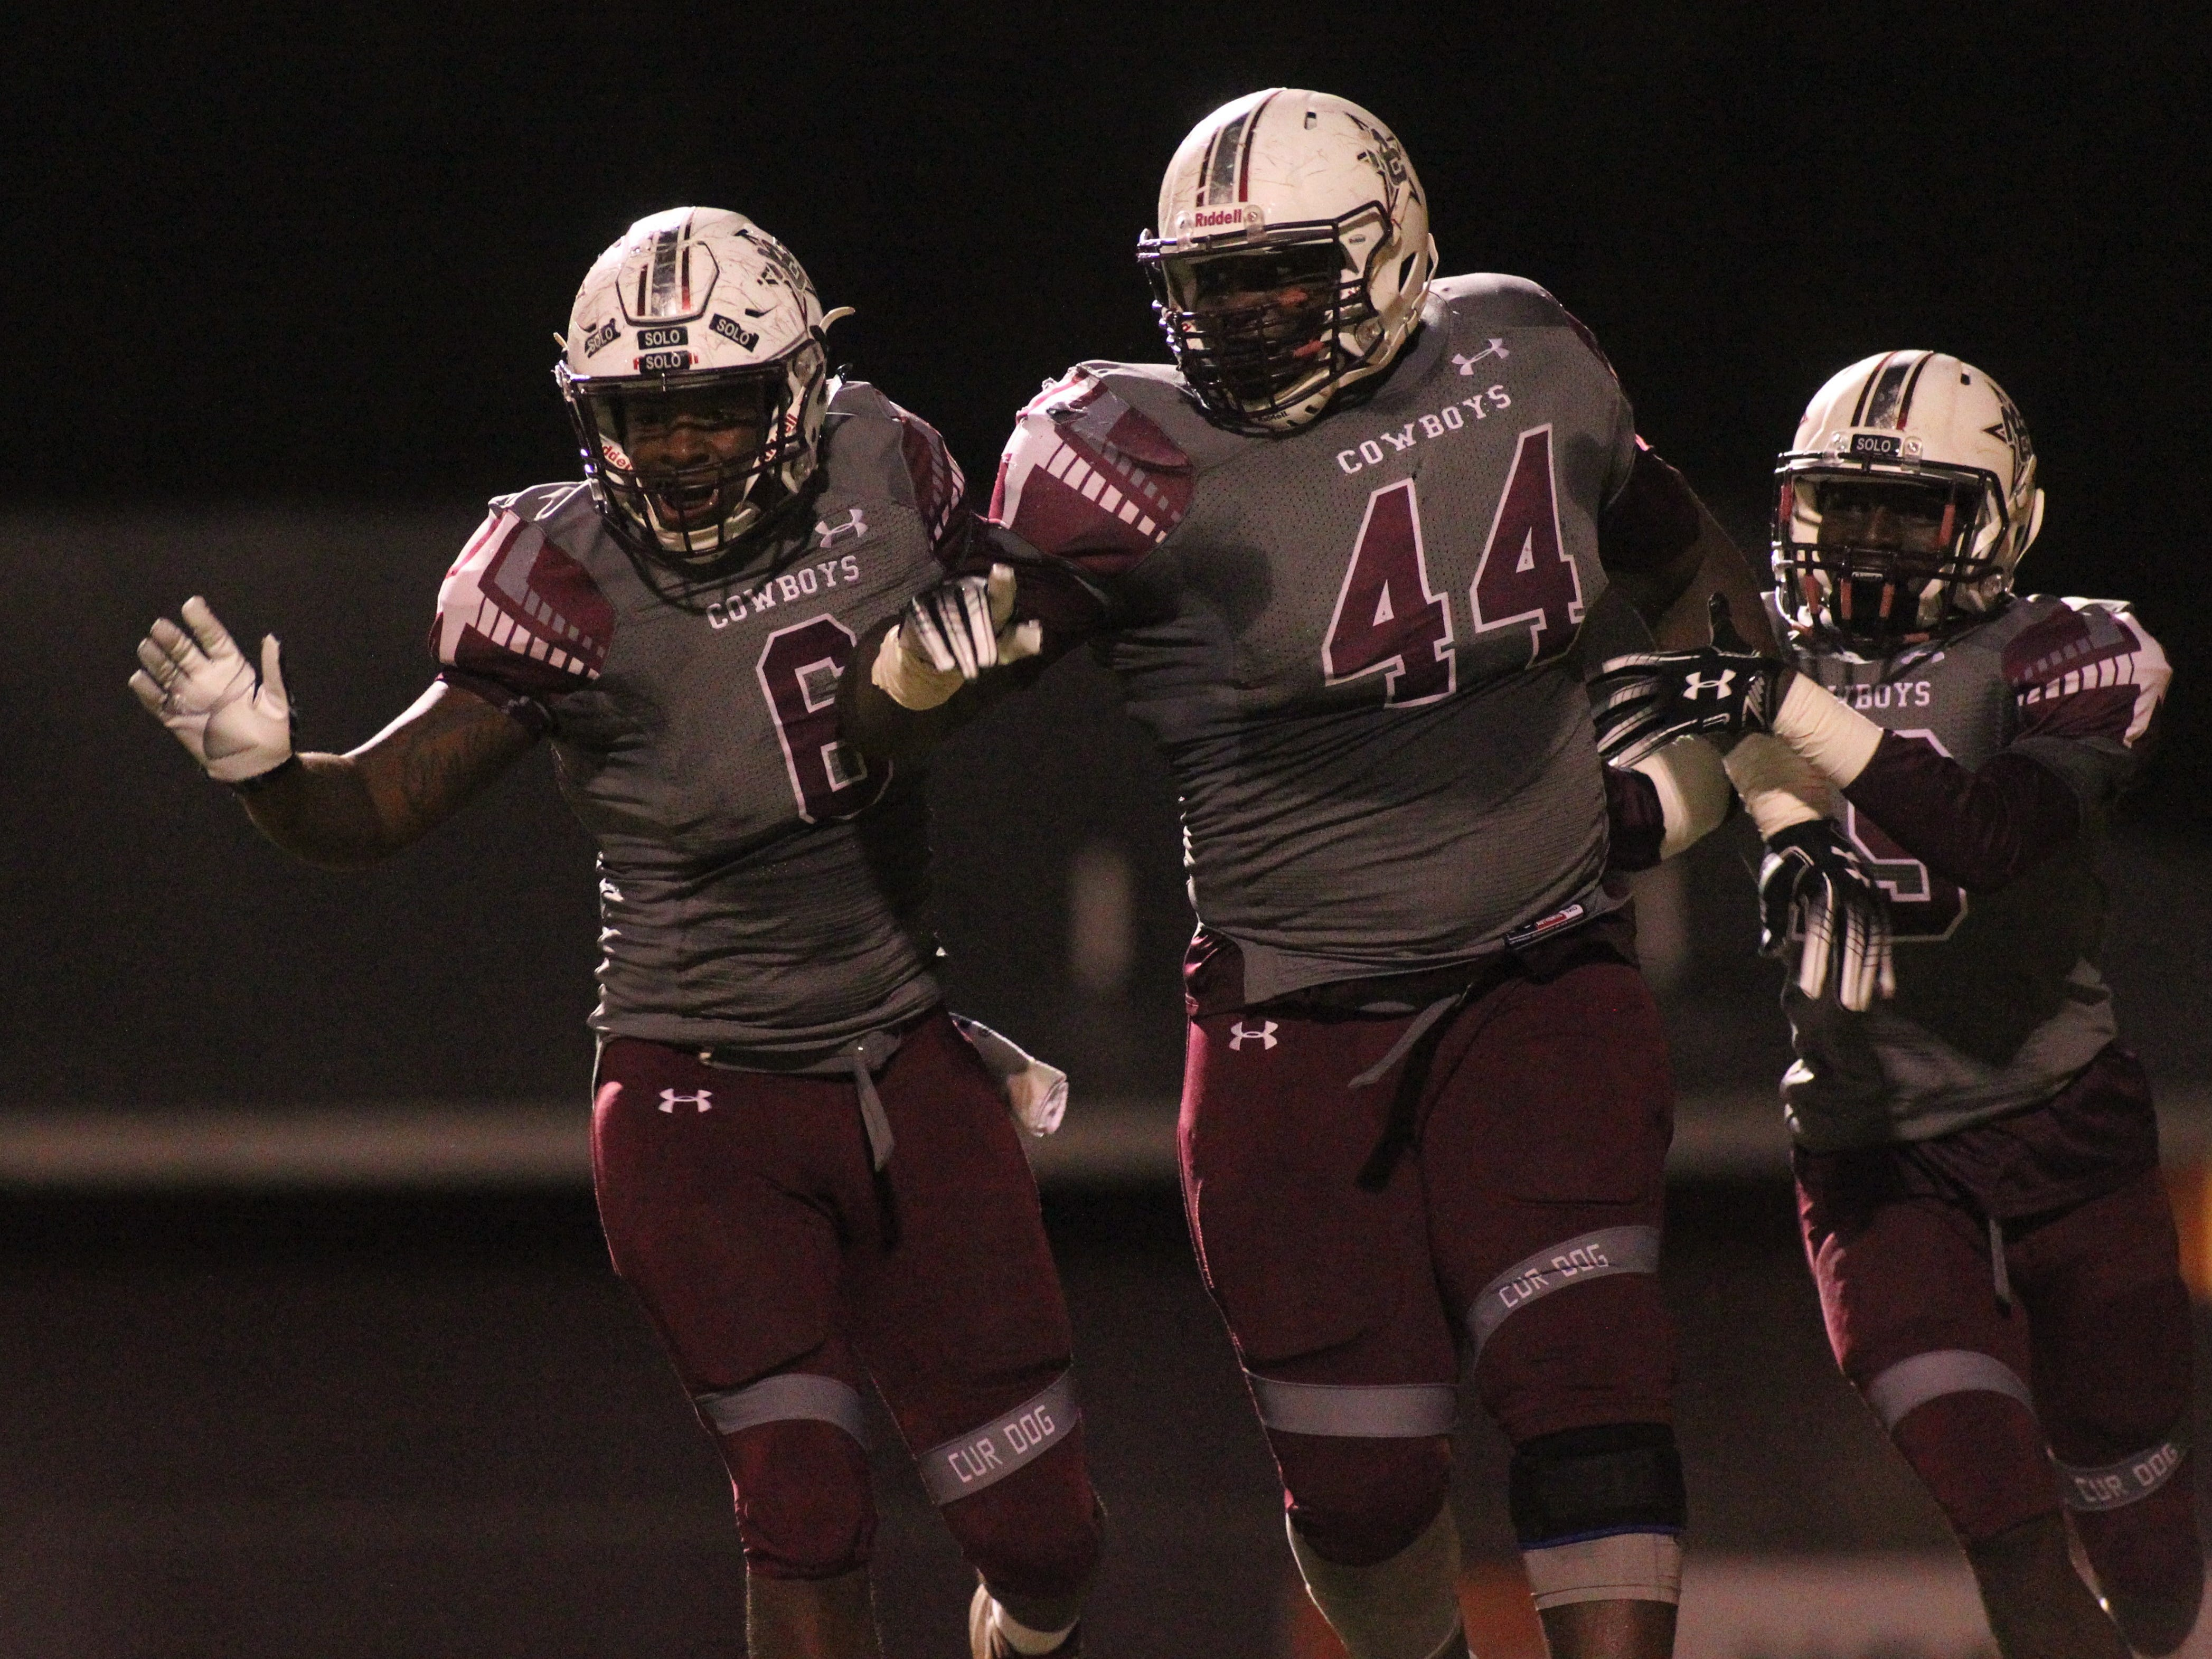 Patrick Hampton (6), Terray Jones (44) and Derrion Staten (9) celebrate Hampton's punt block and Jones' return touchdown as Madison County beat Chiefland 49-14 in a Region 3-1A final at Boot Hill Stadium on Friday, Nov. 23, 2018.